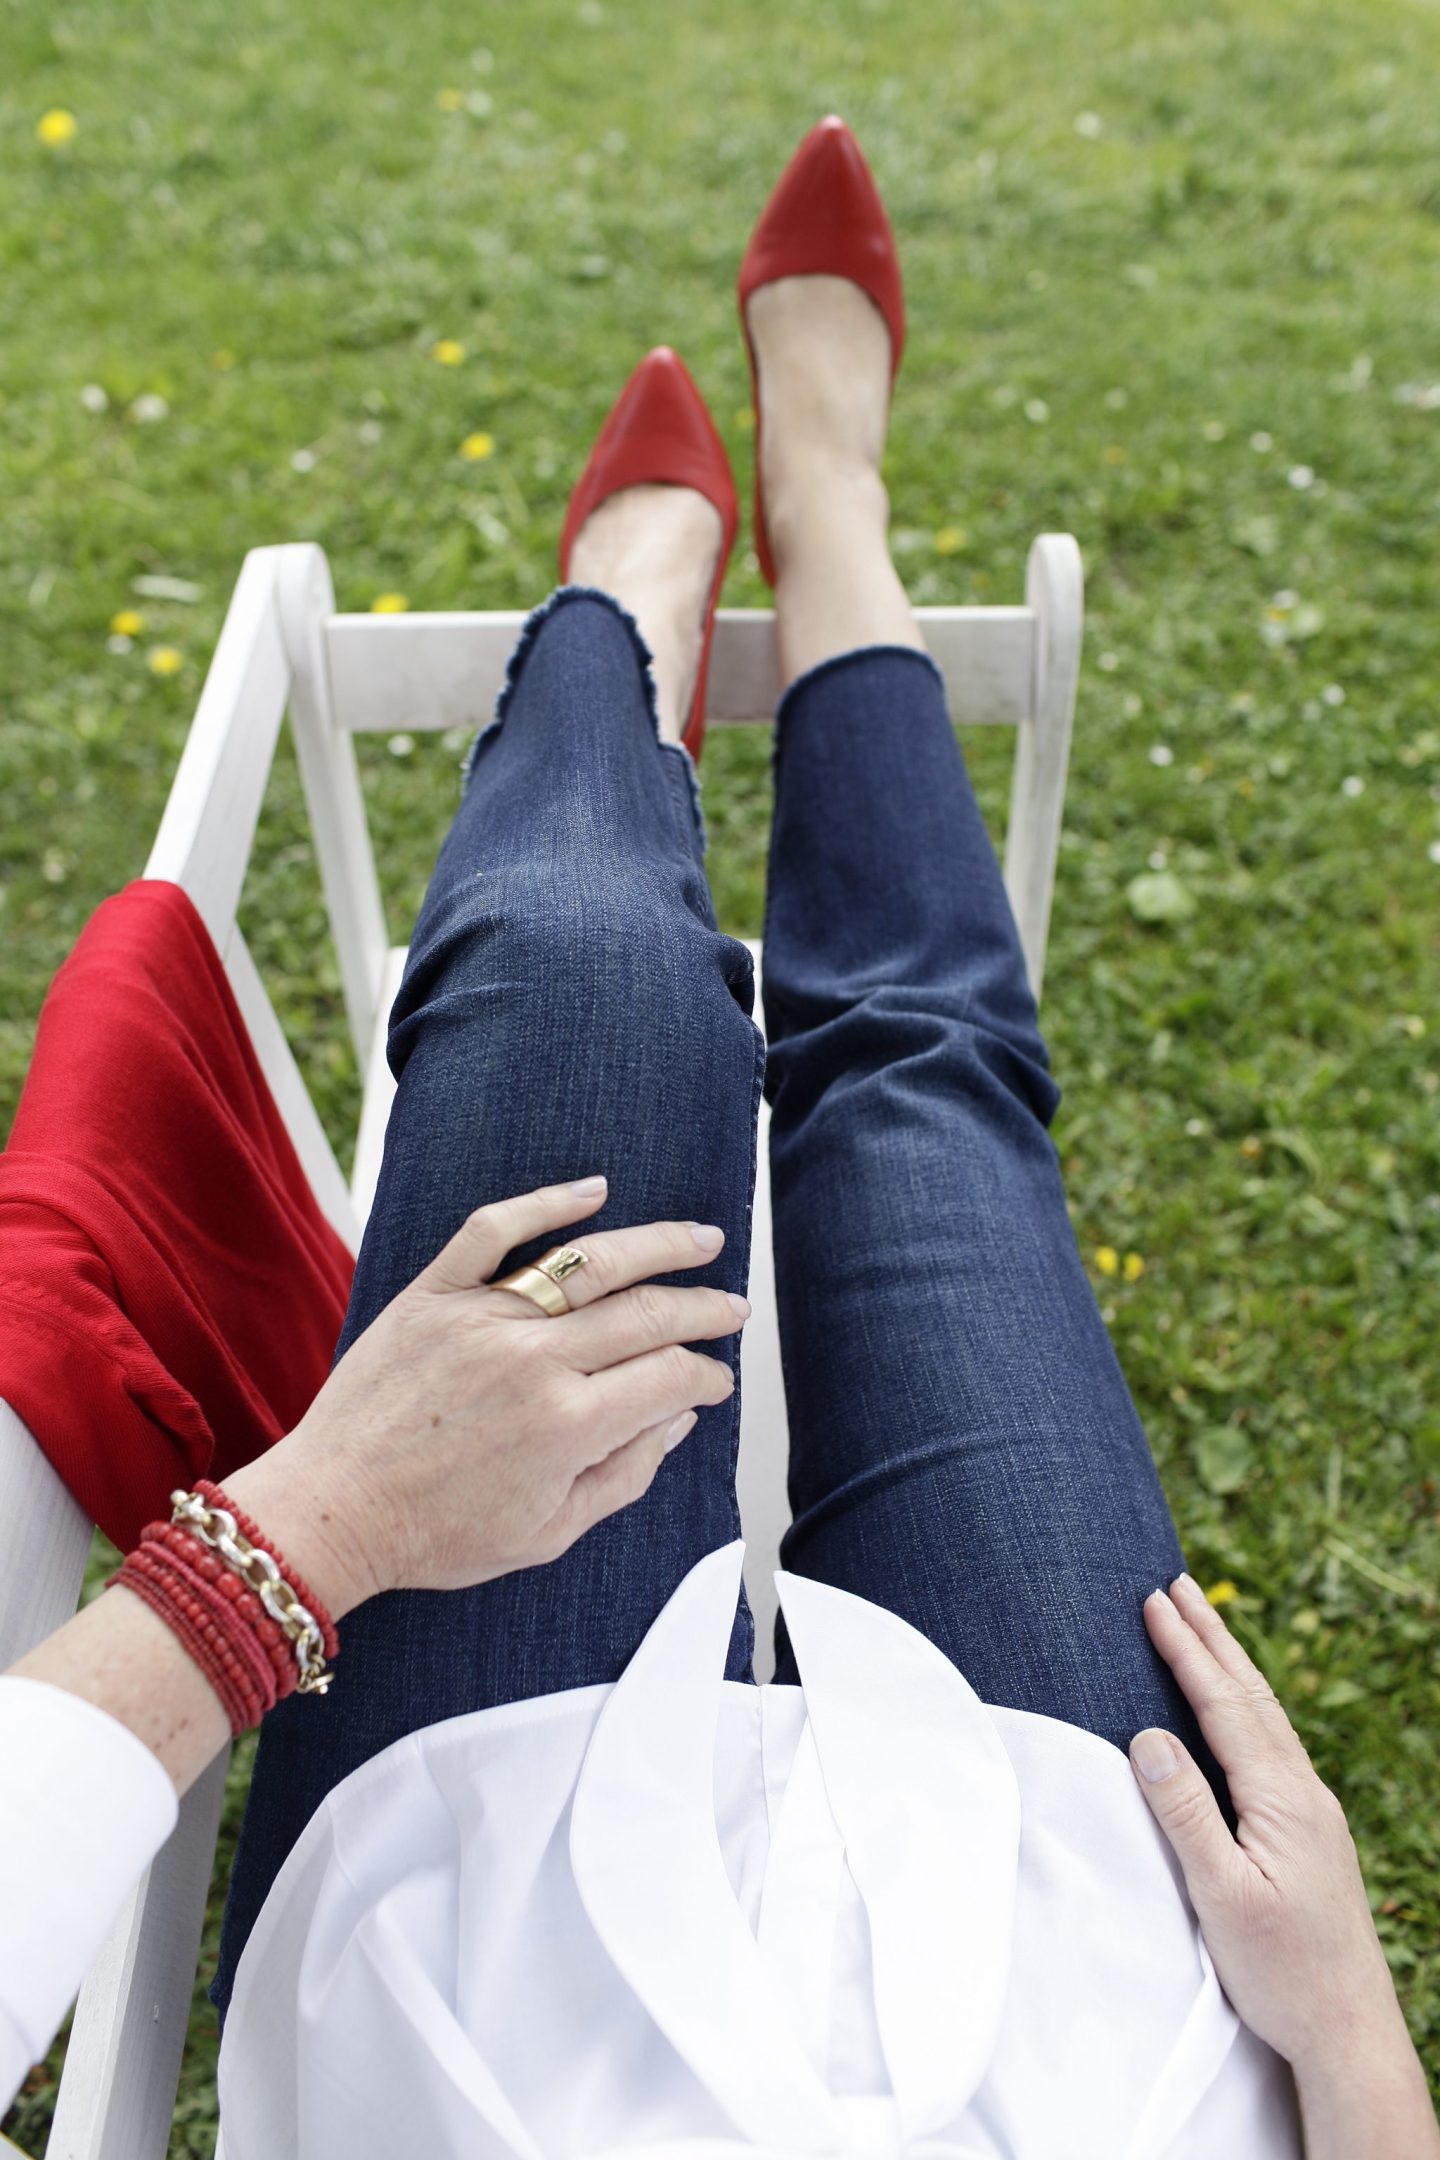 Fruehling Jeans Calla Shoes LadyofStyle